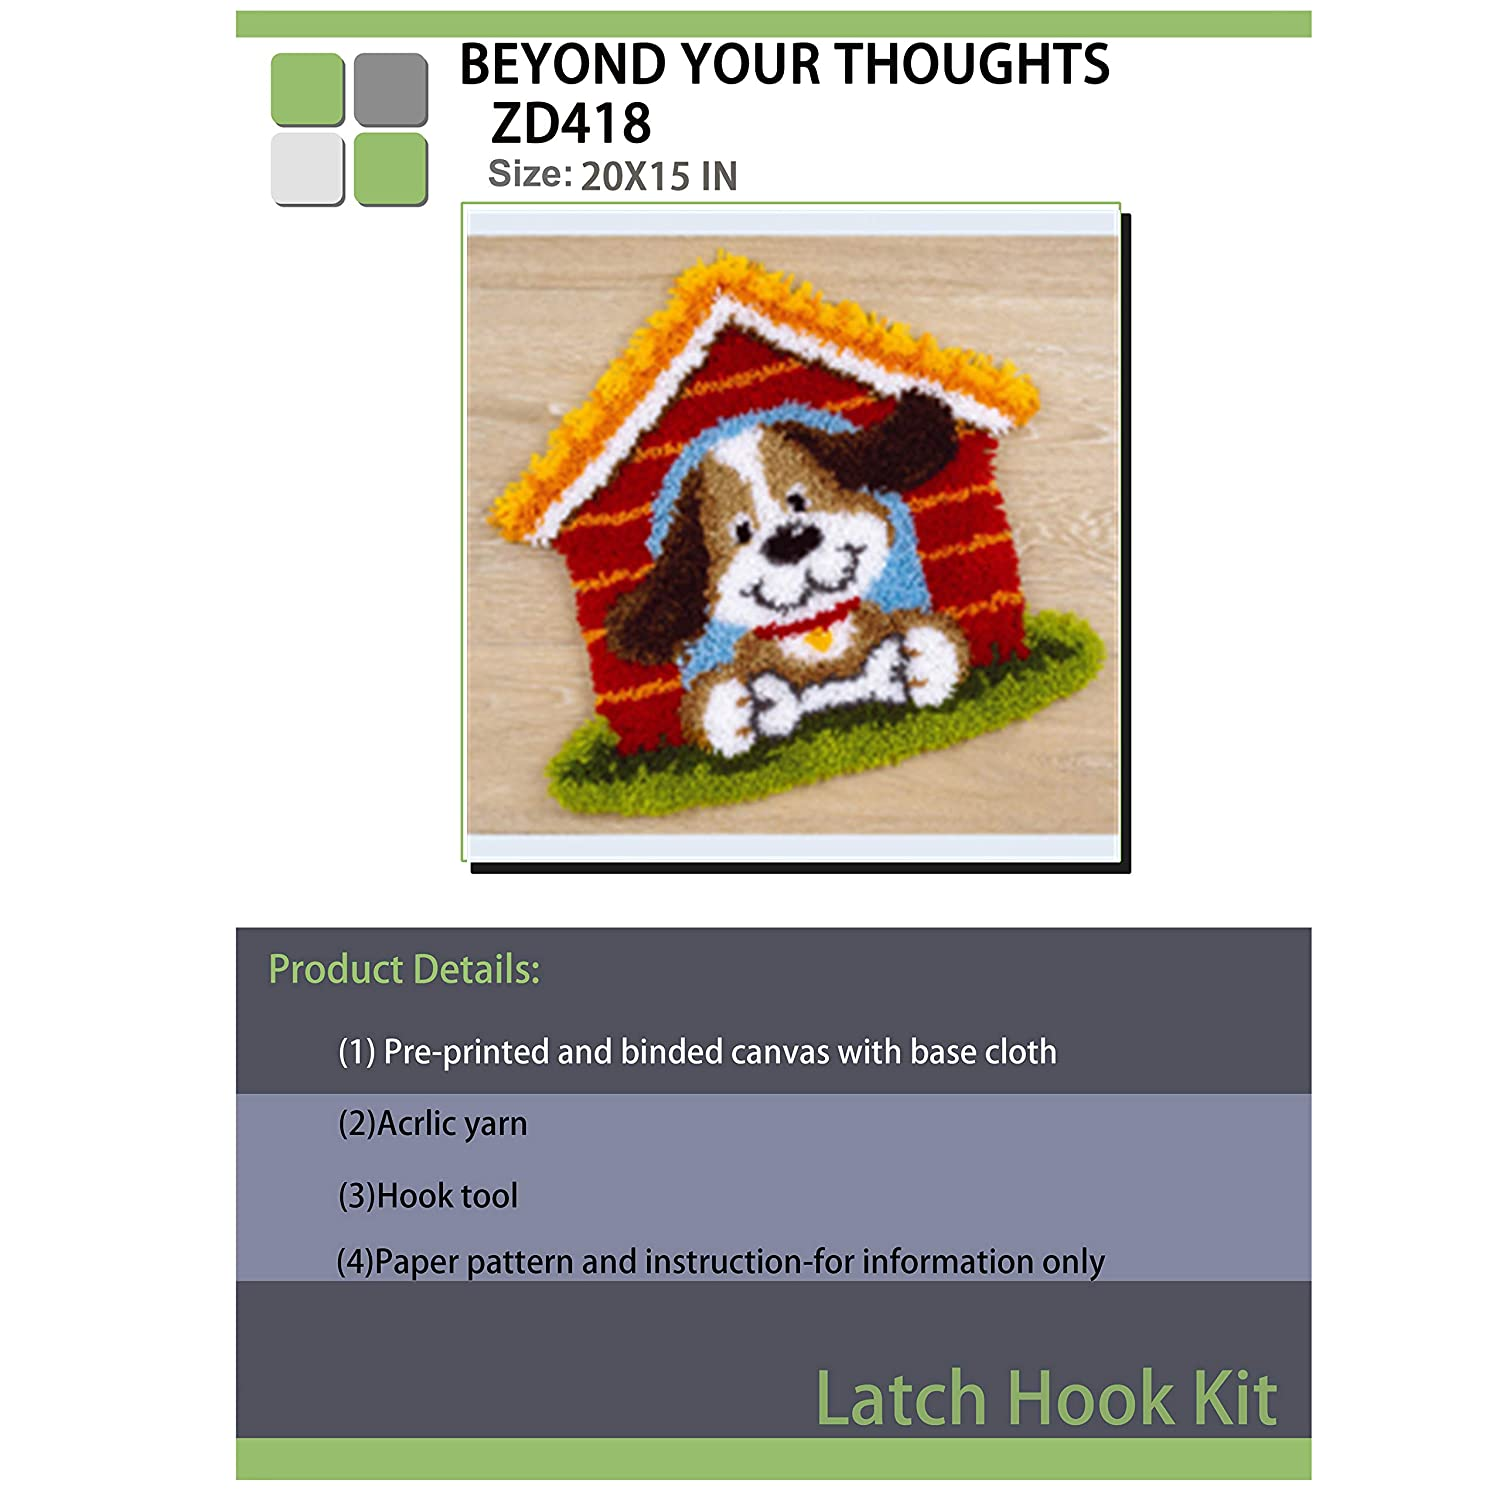 Beyond Your Thoughts15 Model Dog Latch Hook Kit Rug Dog284 20 by 15 Inch 1 Pack